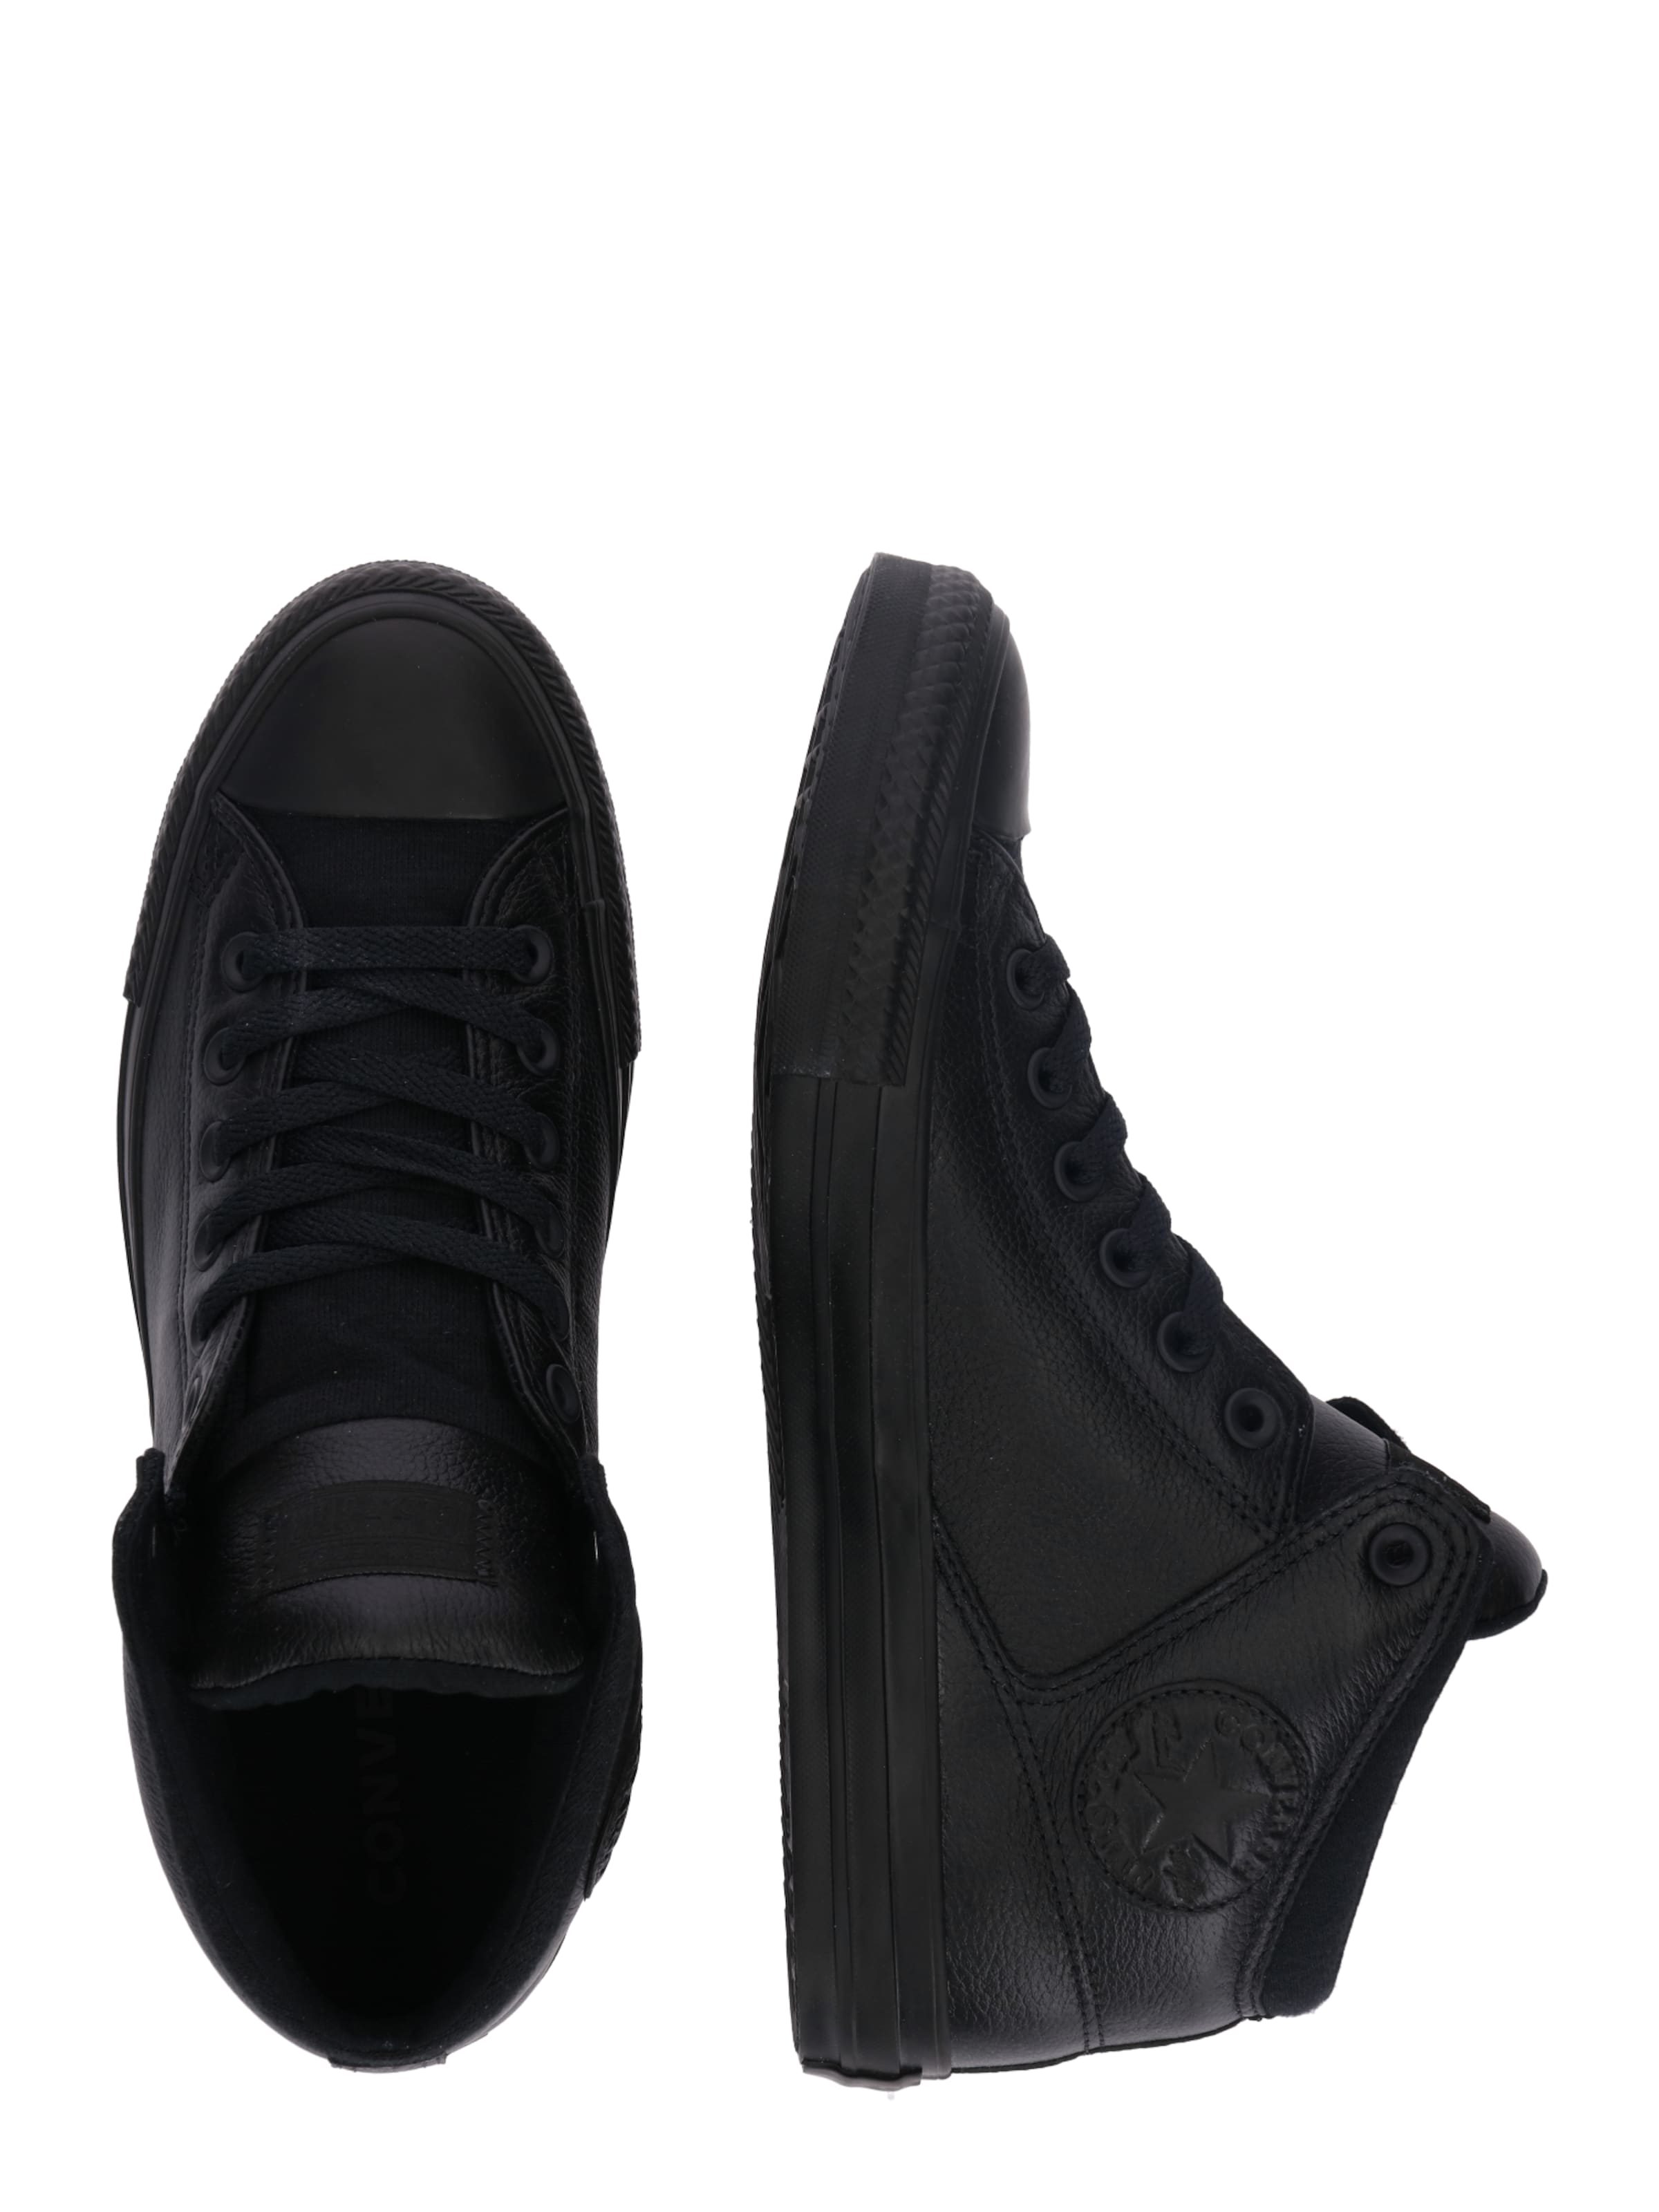 Schwarz High Star In Converse All Street' 'chuck Sneaker Taylor nPk8w0O